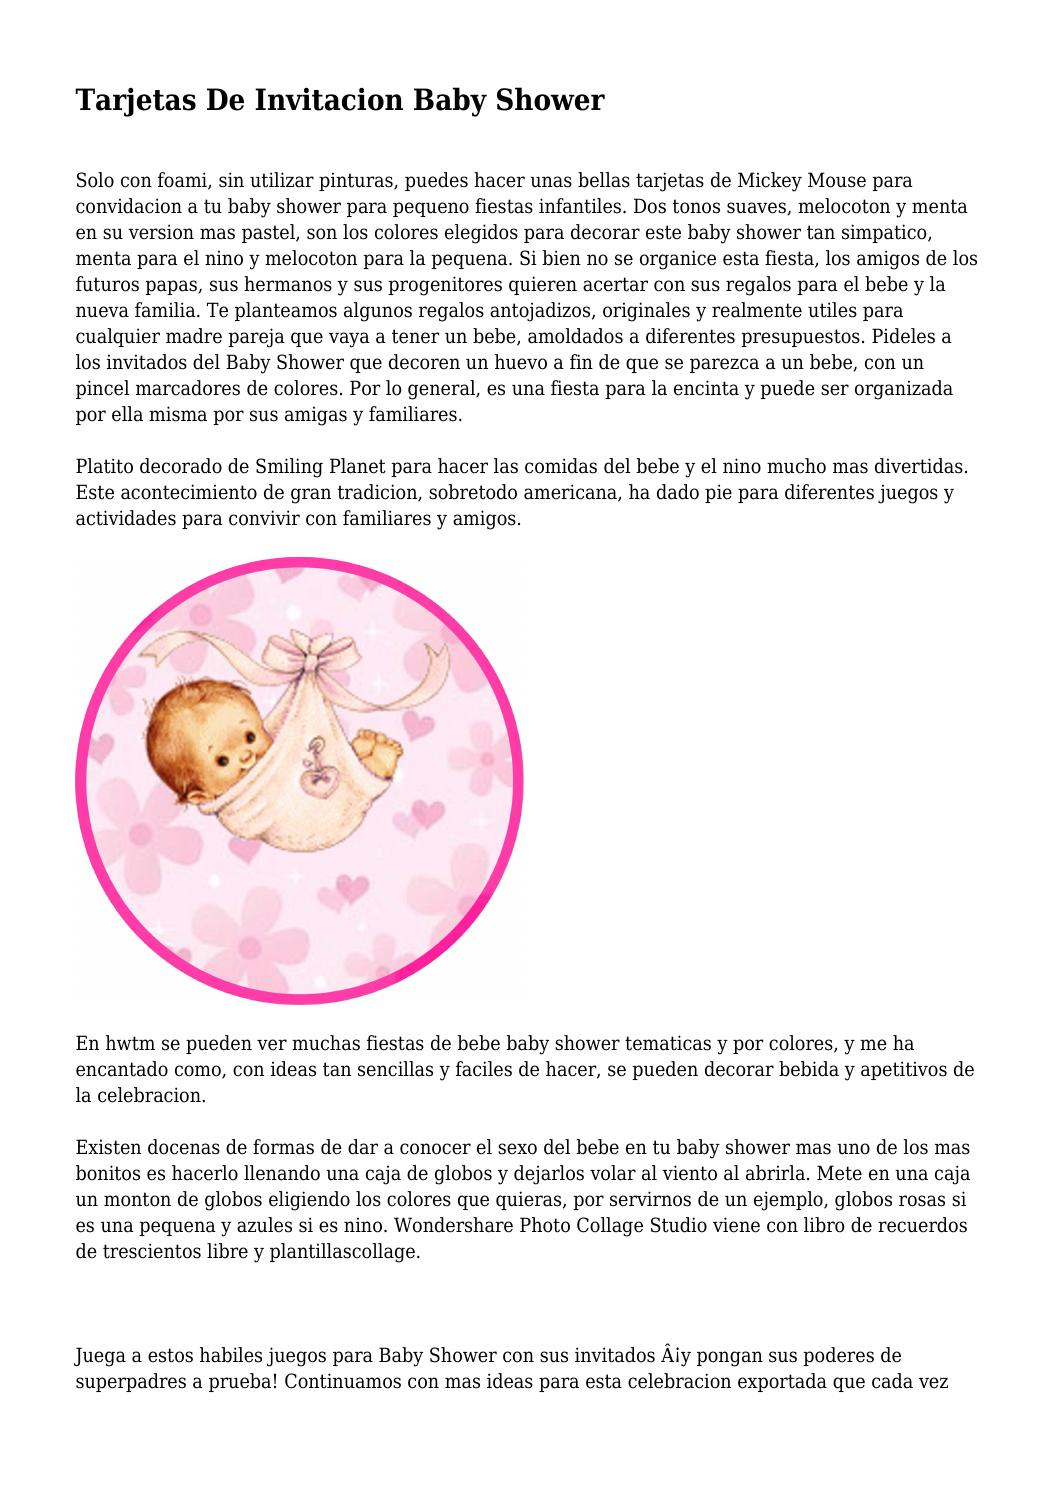 Tarjetas De Invitacion Baby Shower By Internalmystiqu68 Issuu